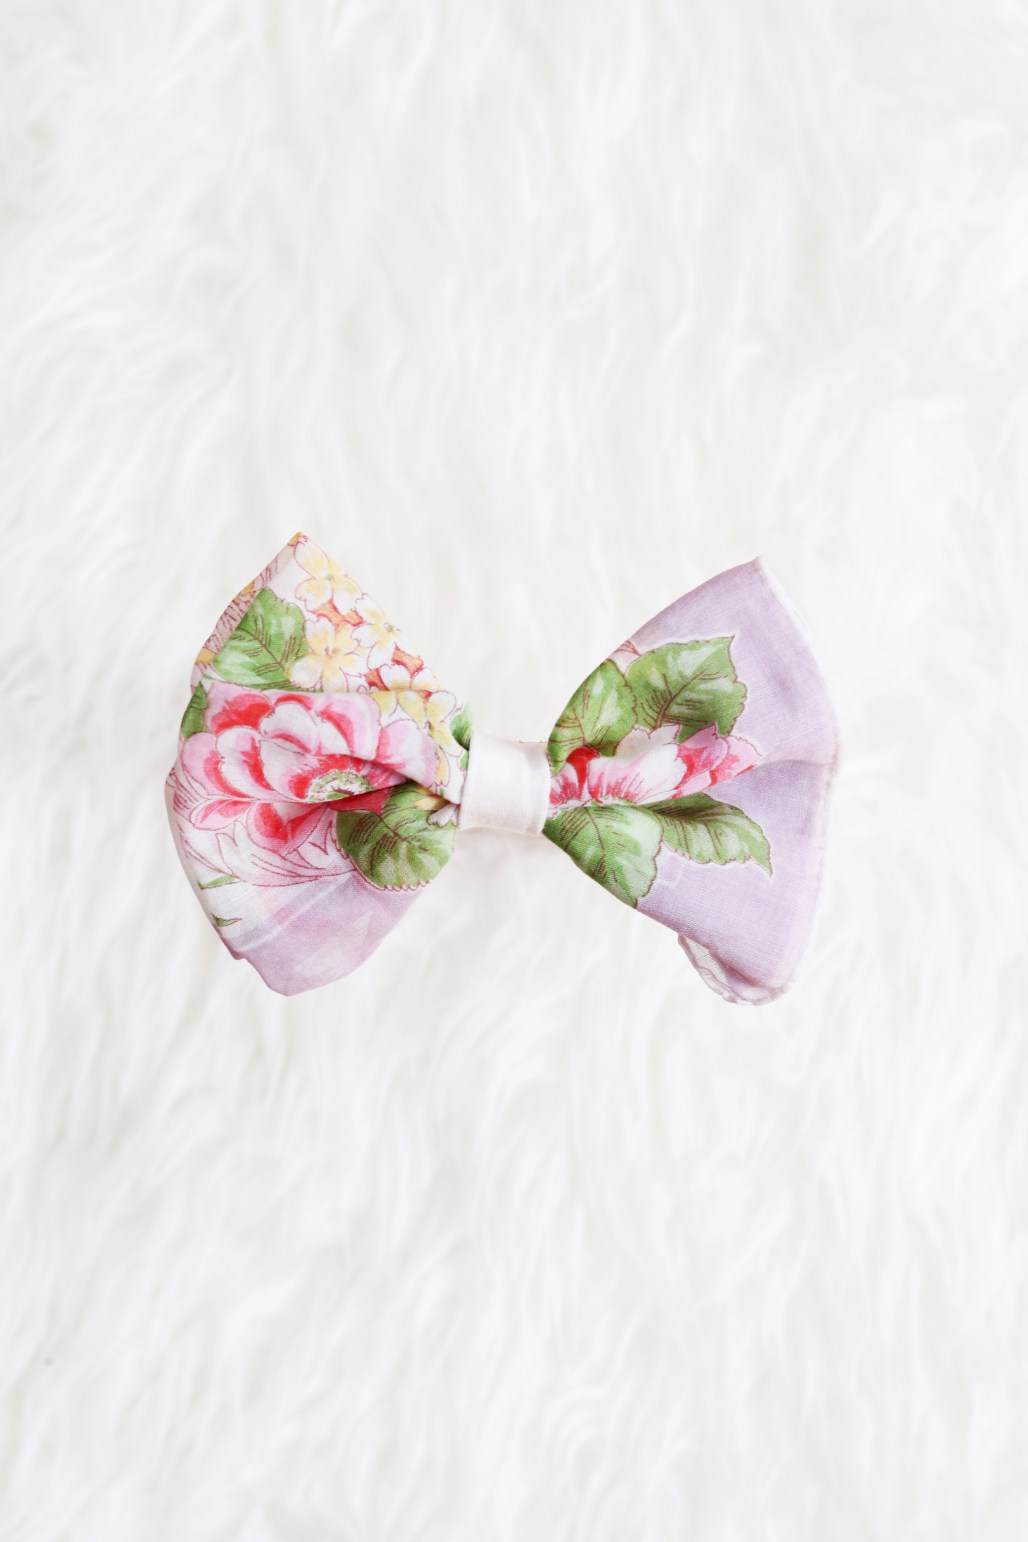 vintage handmade hairbows for littles from alittleriot.etsy.com